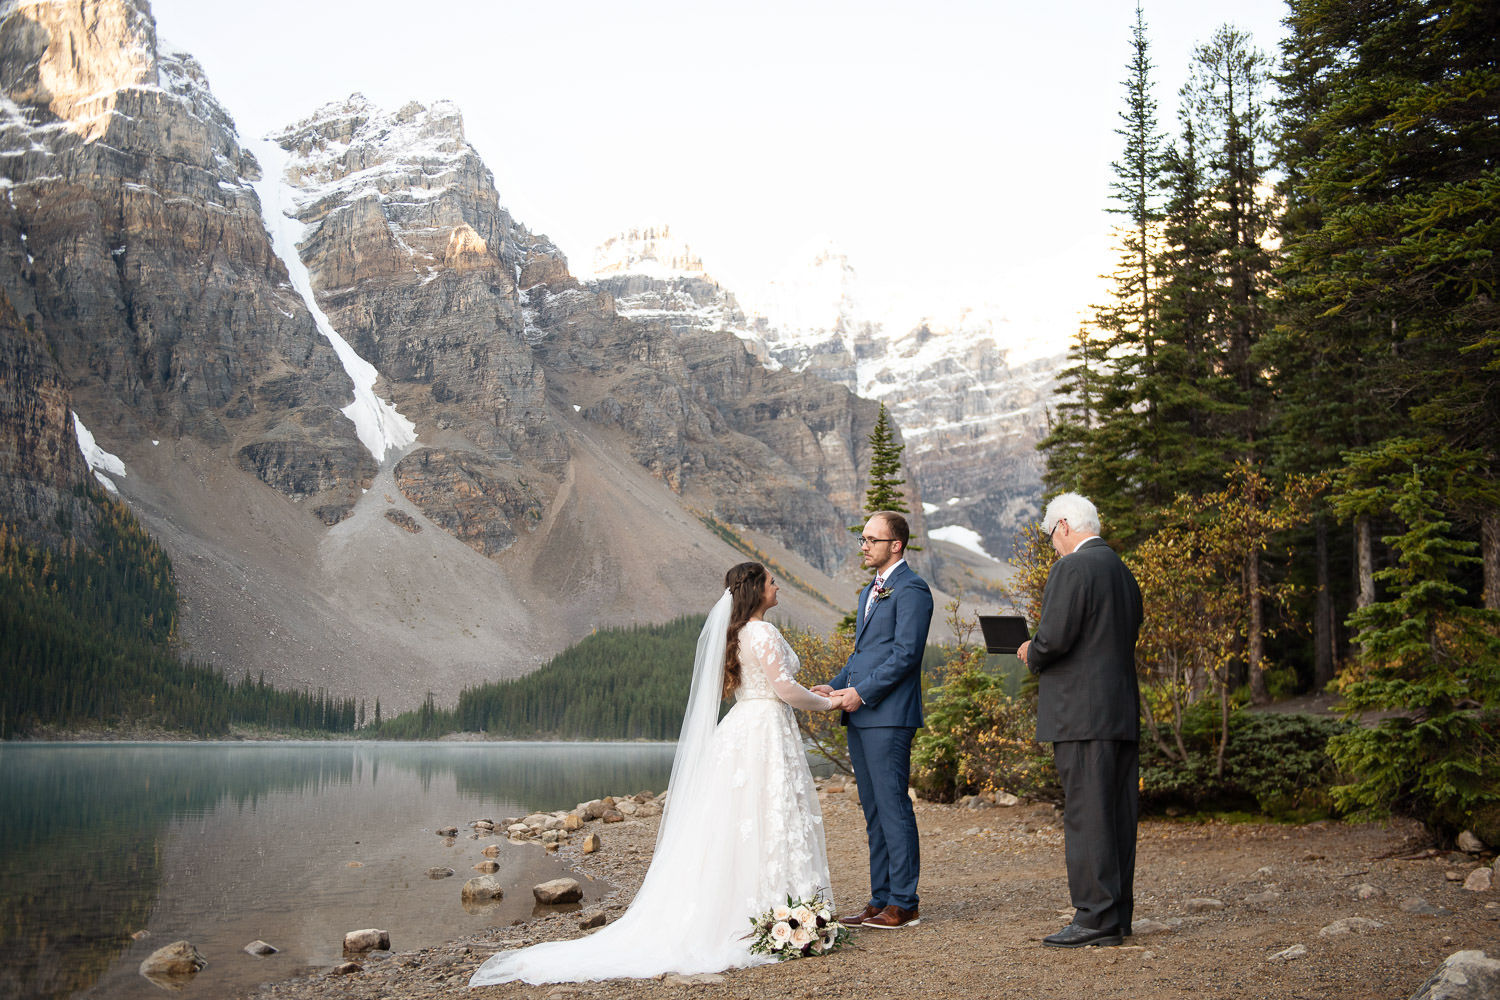 Wedding ceremony on the shore of Moraine Lake captured by Tara Whittaker Photography